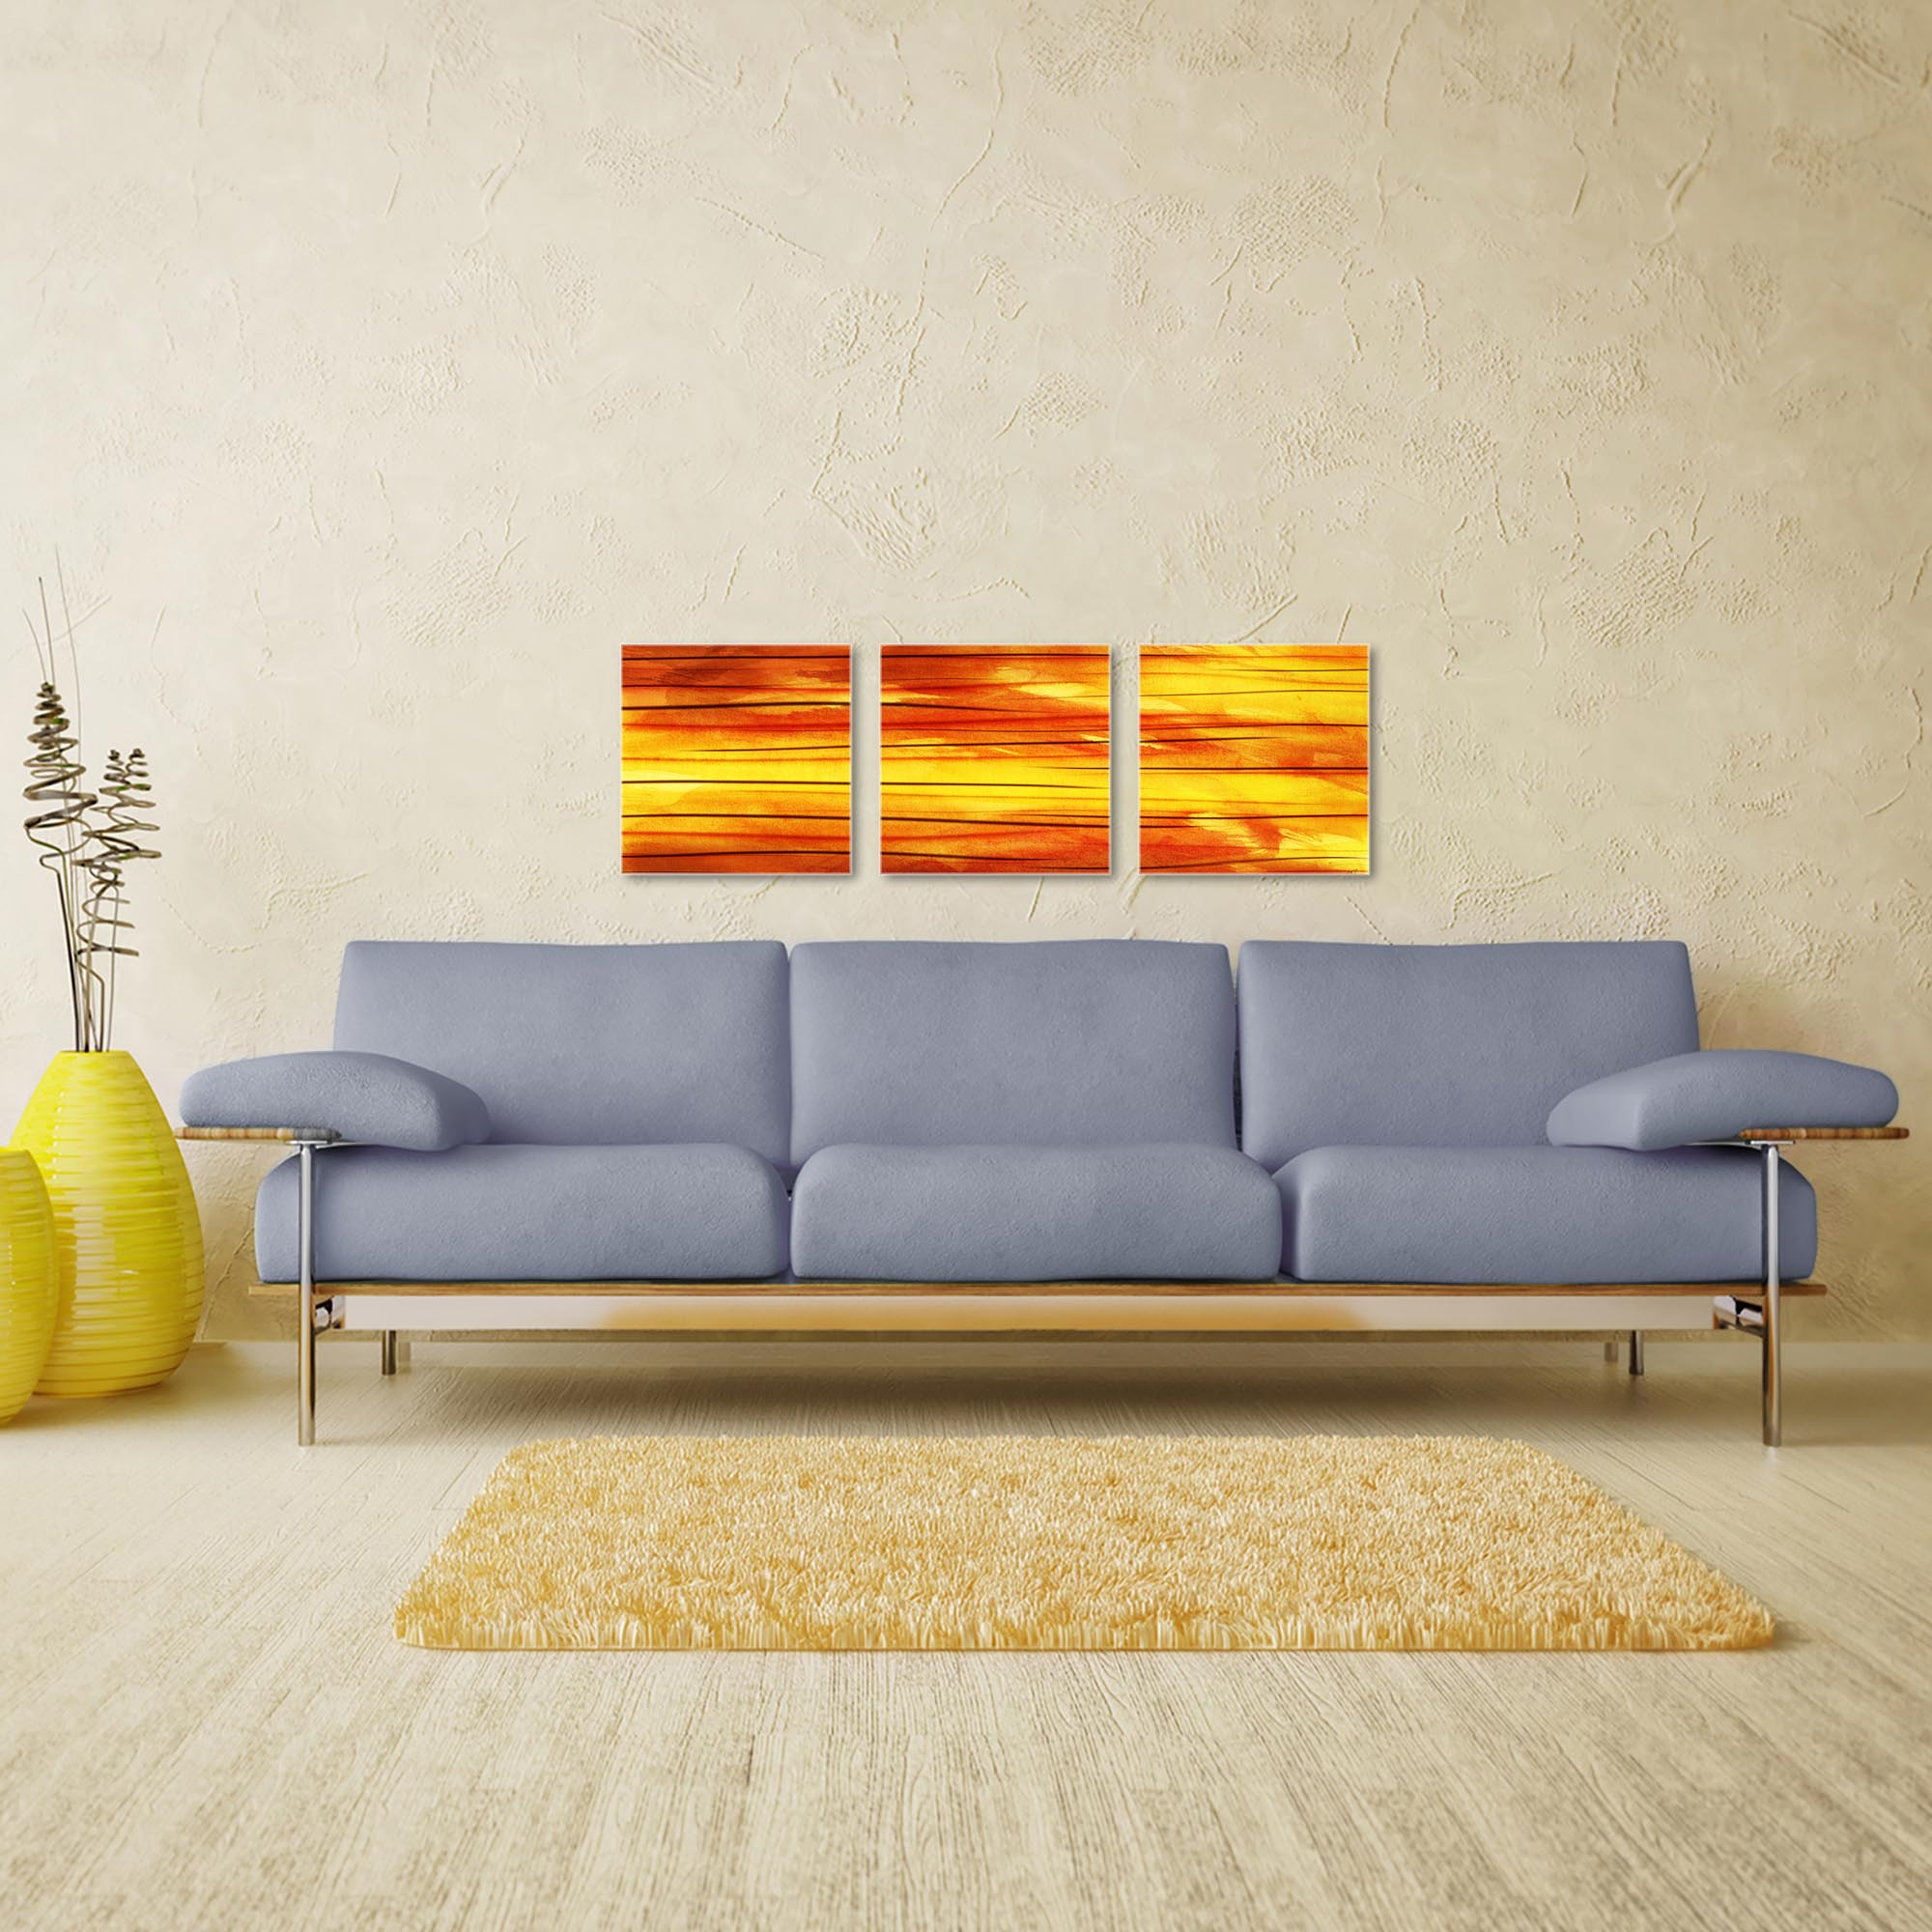 Momentum Triptych 38x12in. Metal or Acrylic Abstract Decor - Image 3